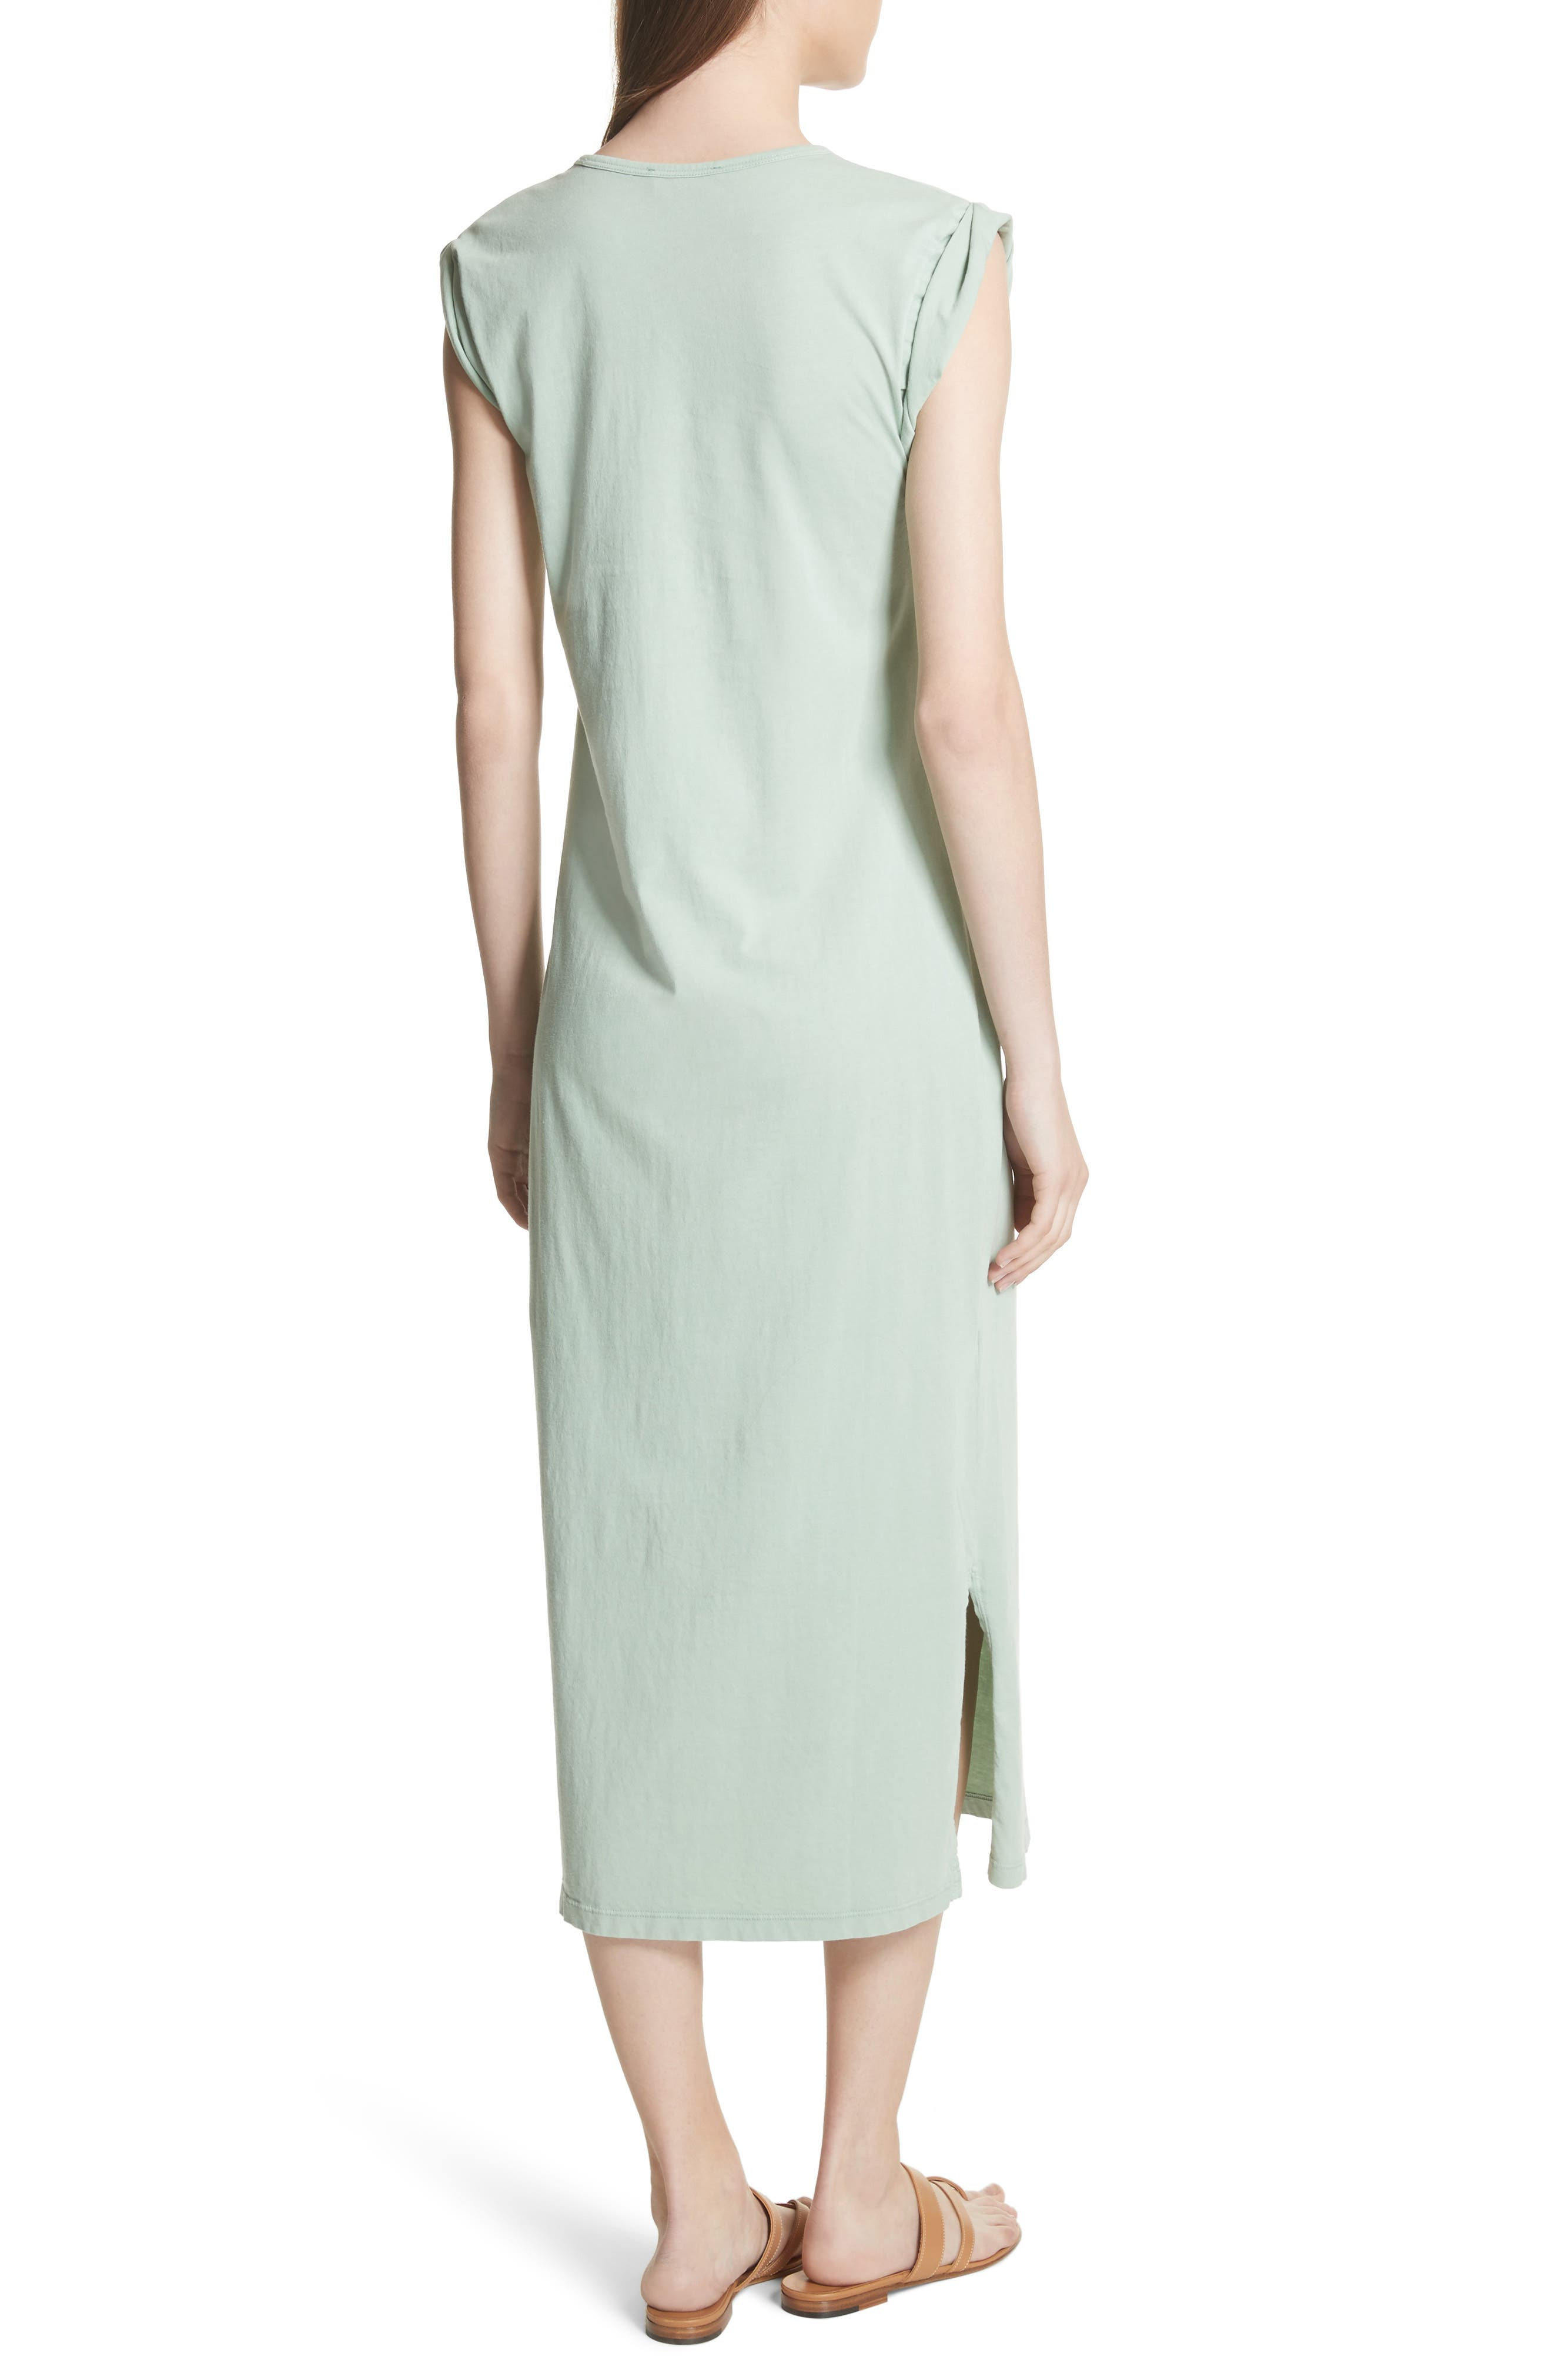 Muscle P Relaxed T-Shirt Dress,                             Alternate thumbnail 2, color,                             391